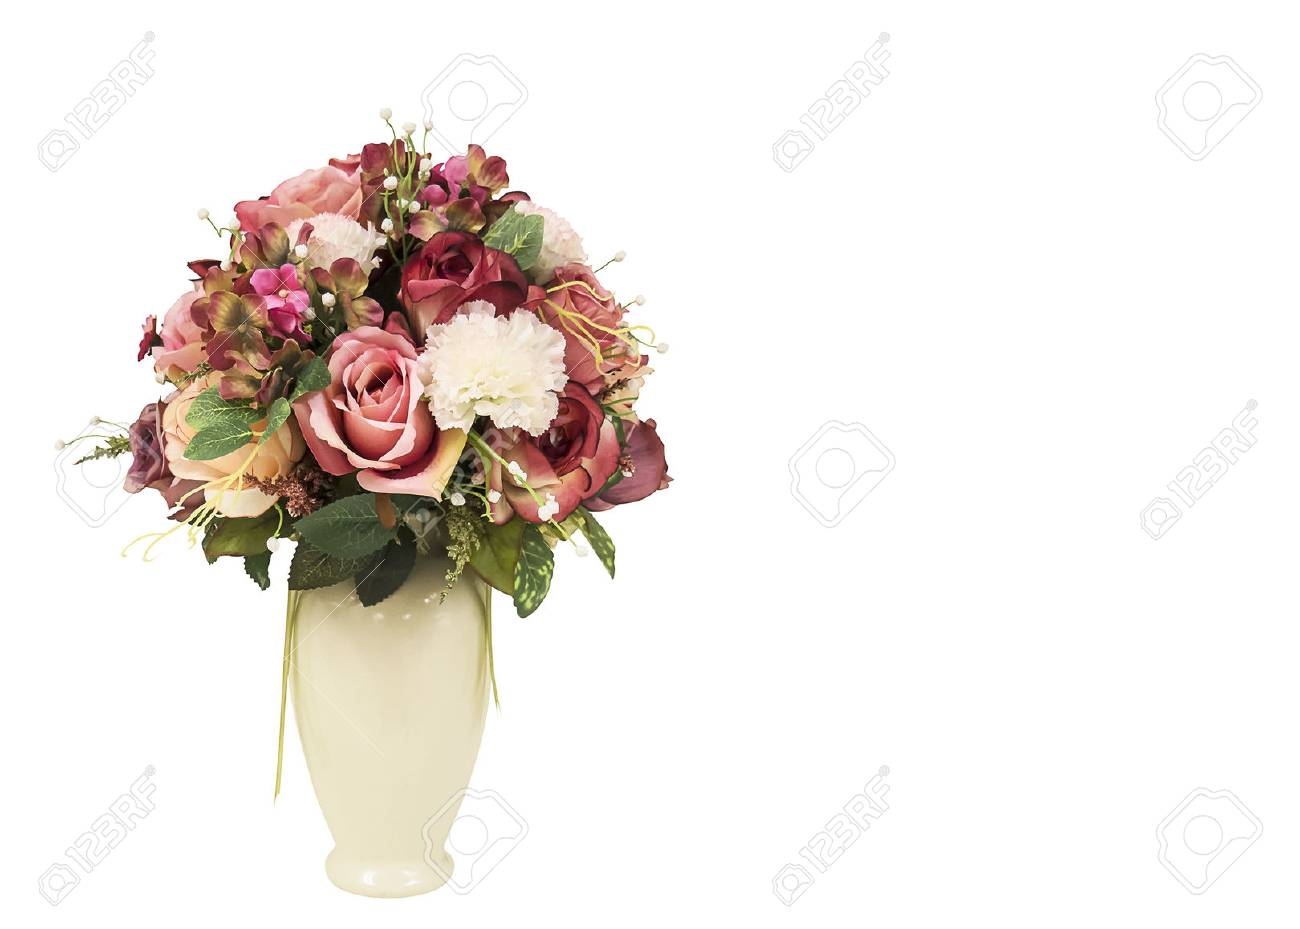 Artificial Flowers In The White Big Vase For Interior Decoration